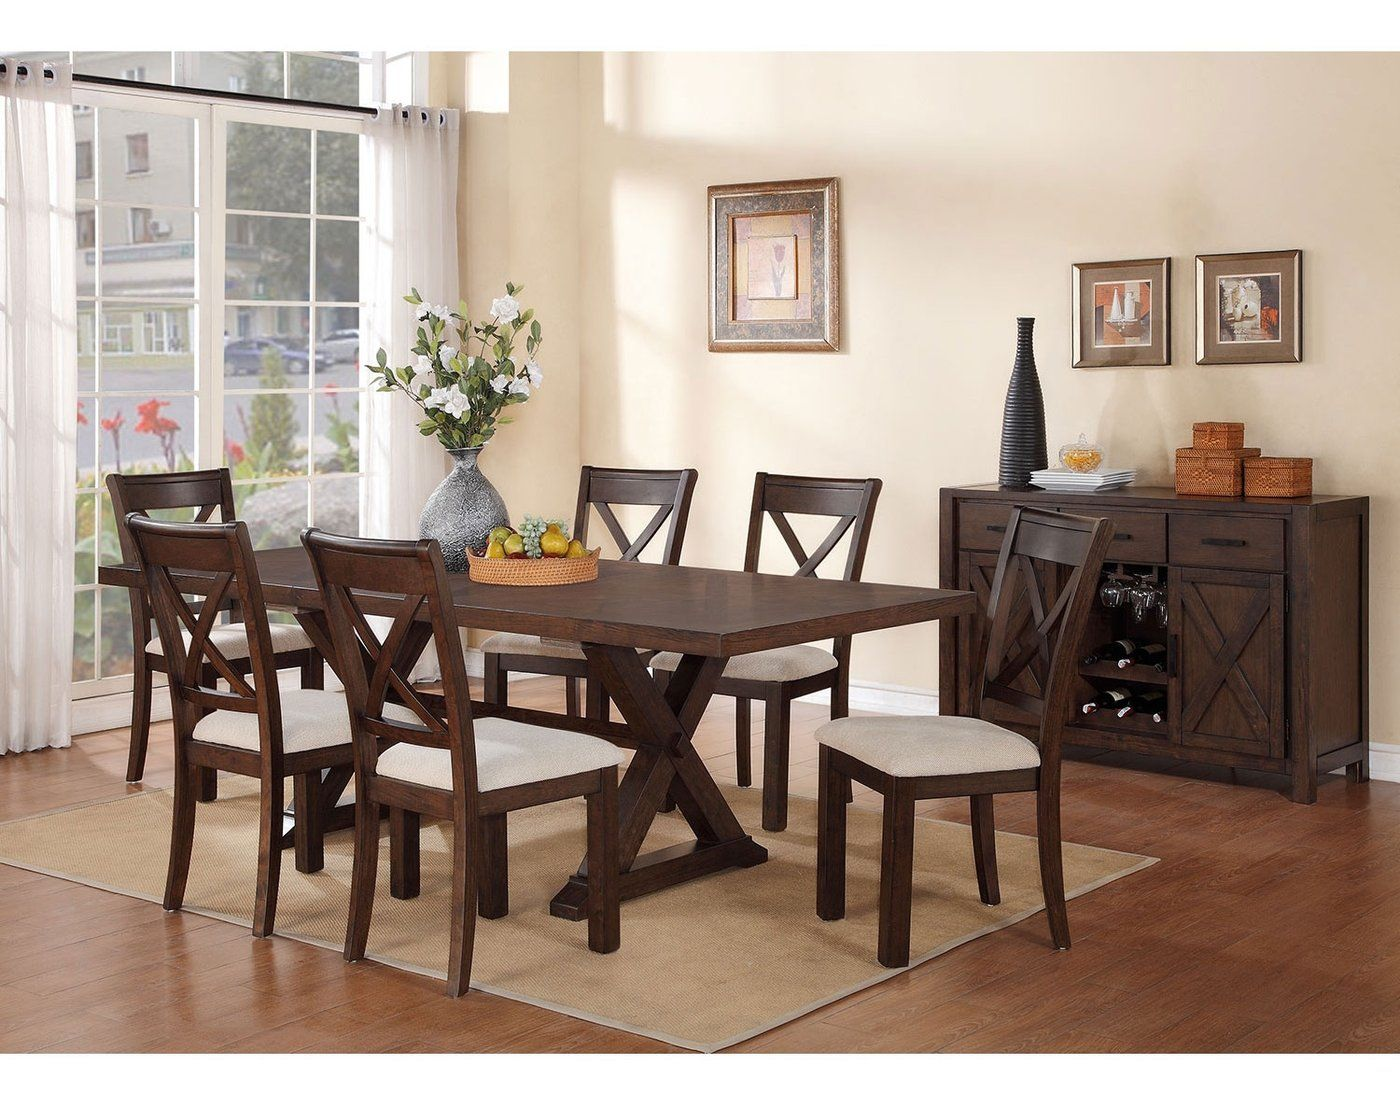 Claira 7piece dining room set rustic brown in 2020